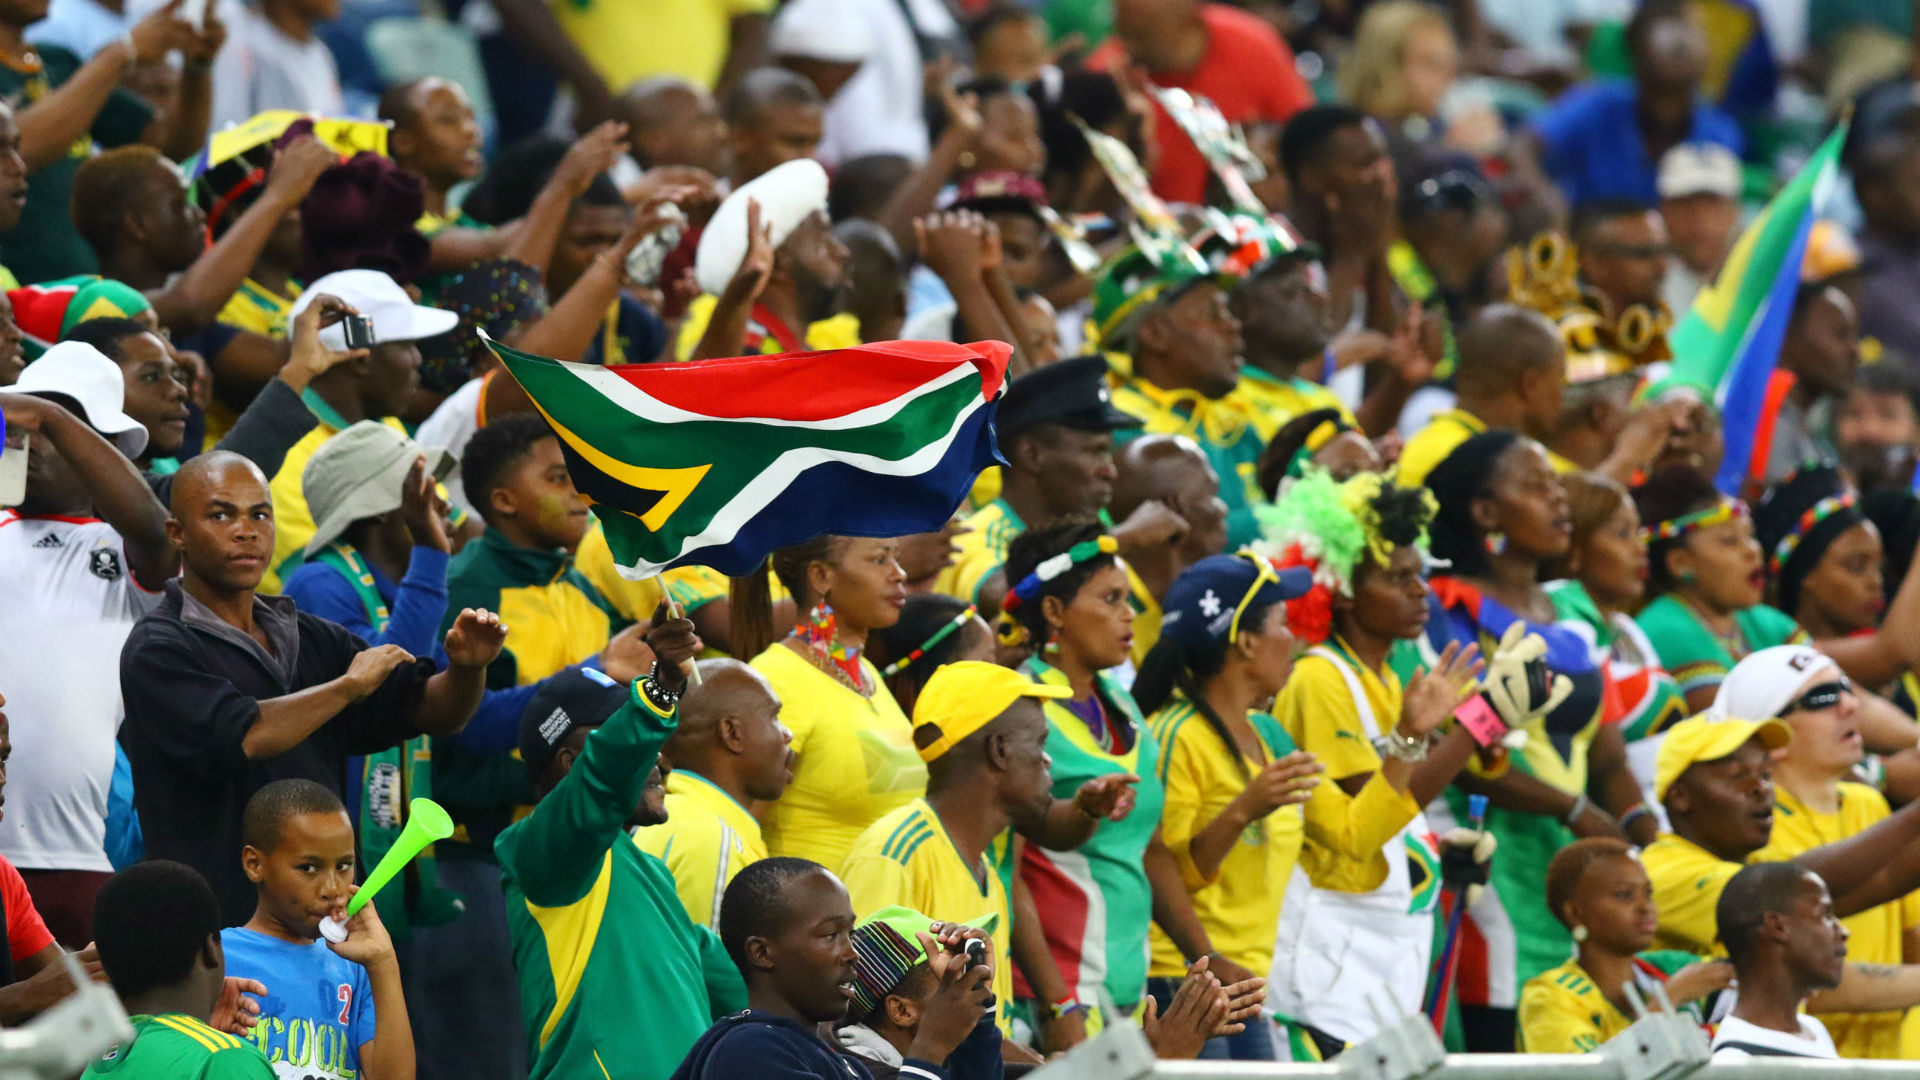 Can Bafana Bafana qualify for the World Cup? - Fan response